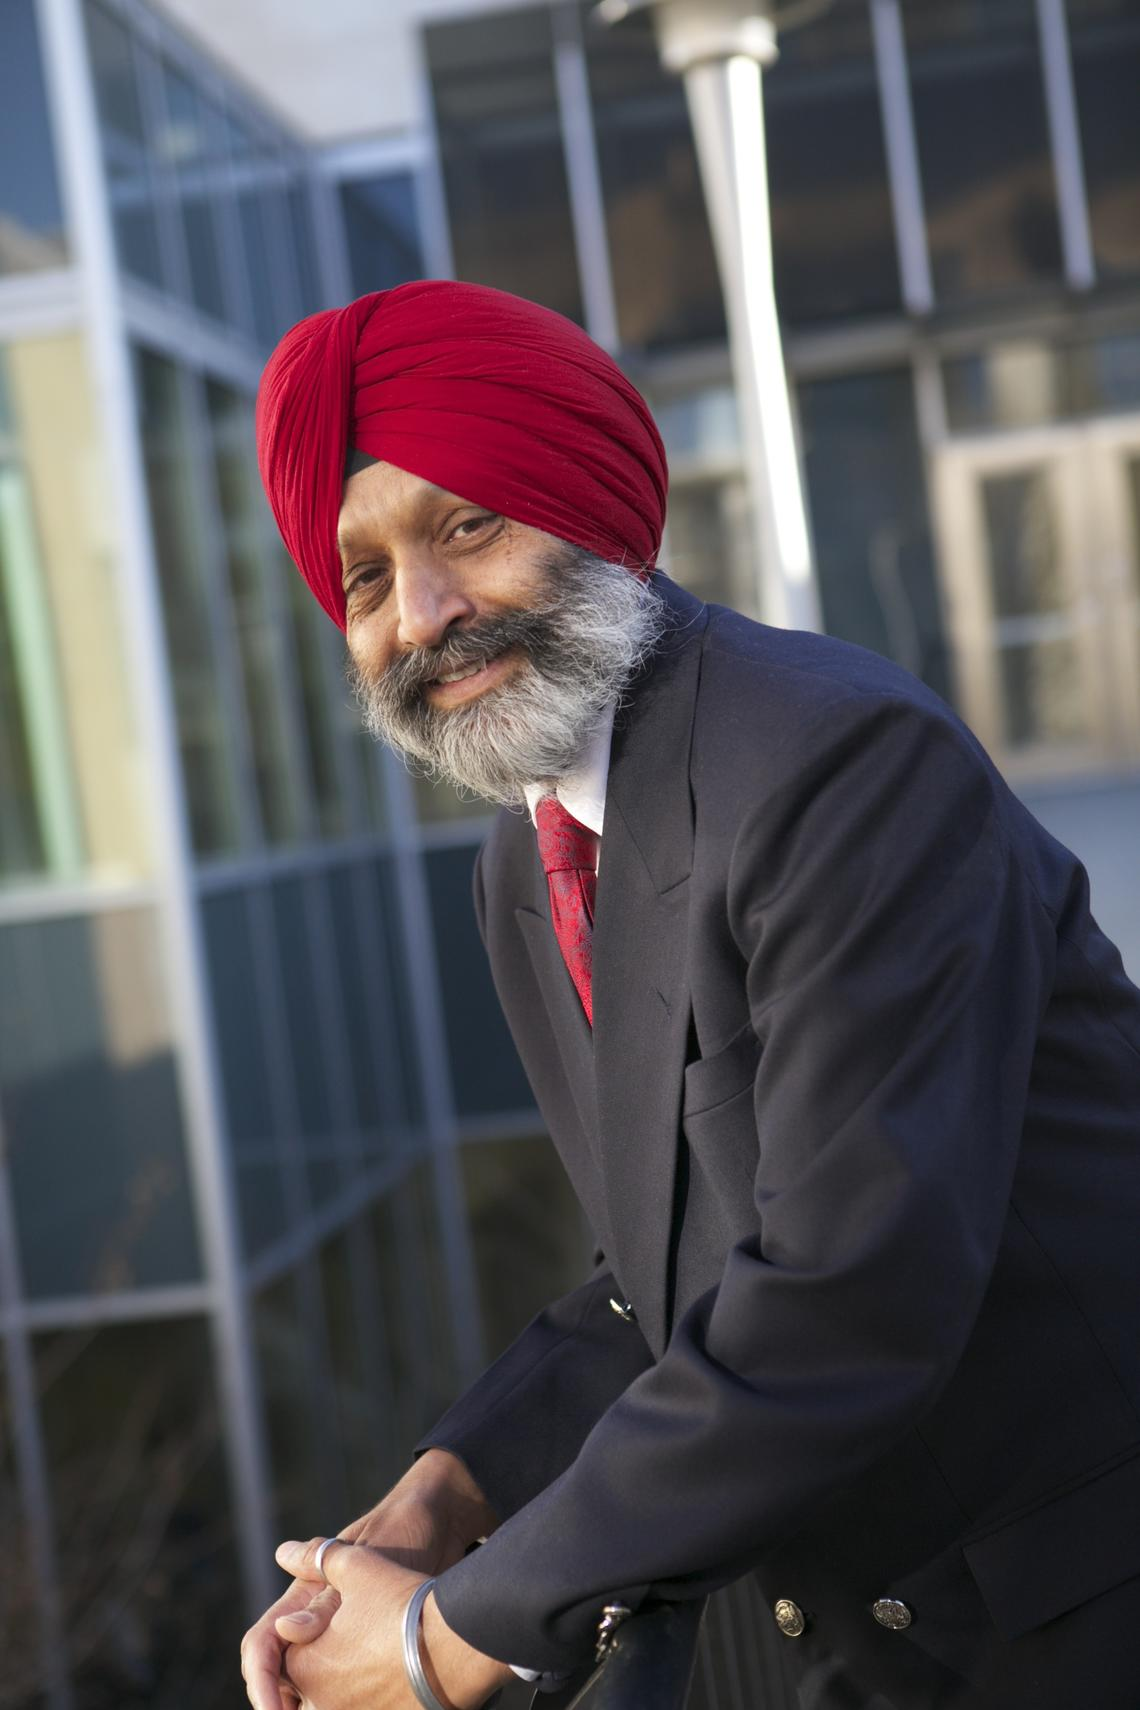 Baljit Singh's appointment as dean of the Faculty of Veterinary Medicine, University of Calgary, takes effect on Sept. 1, 2016.